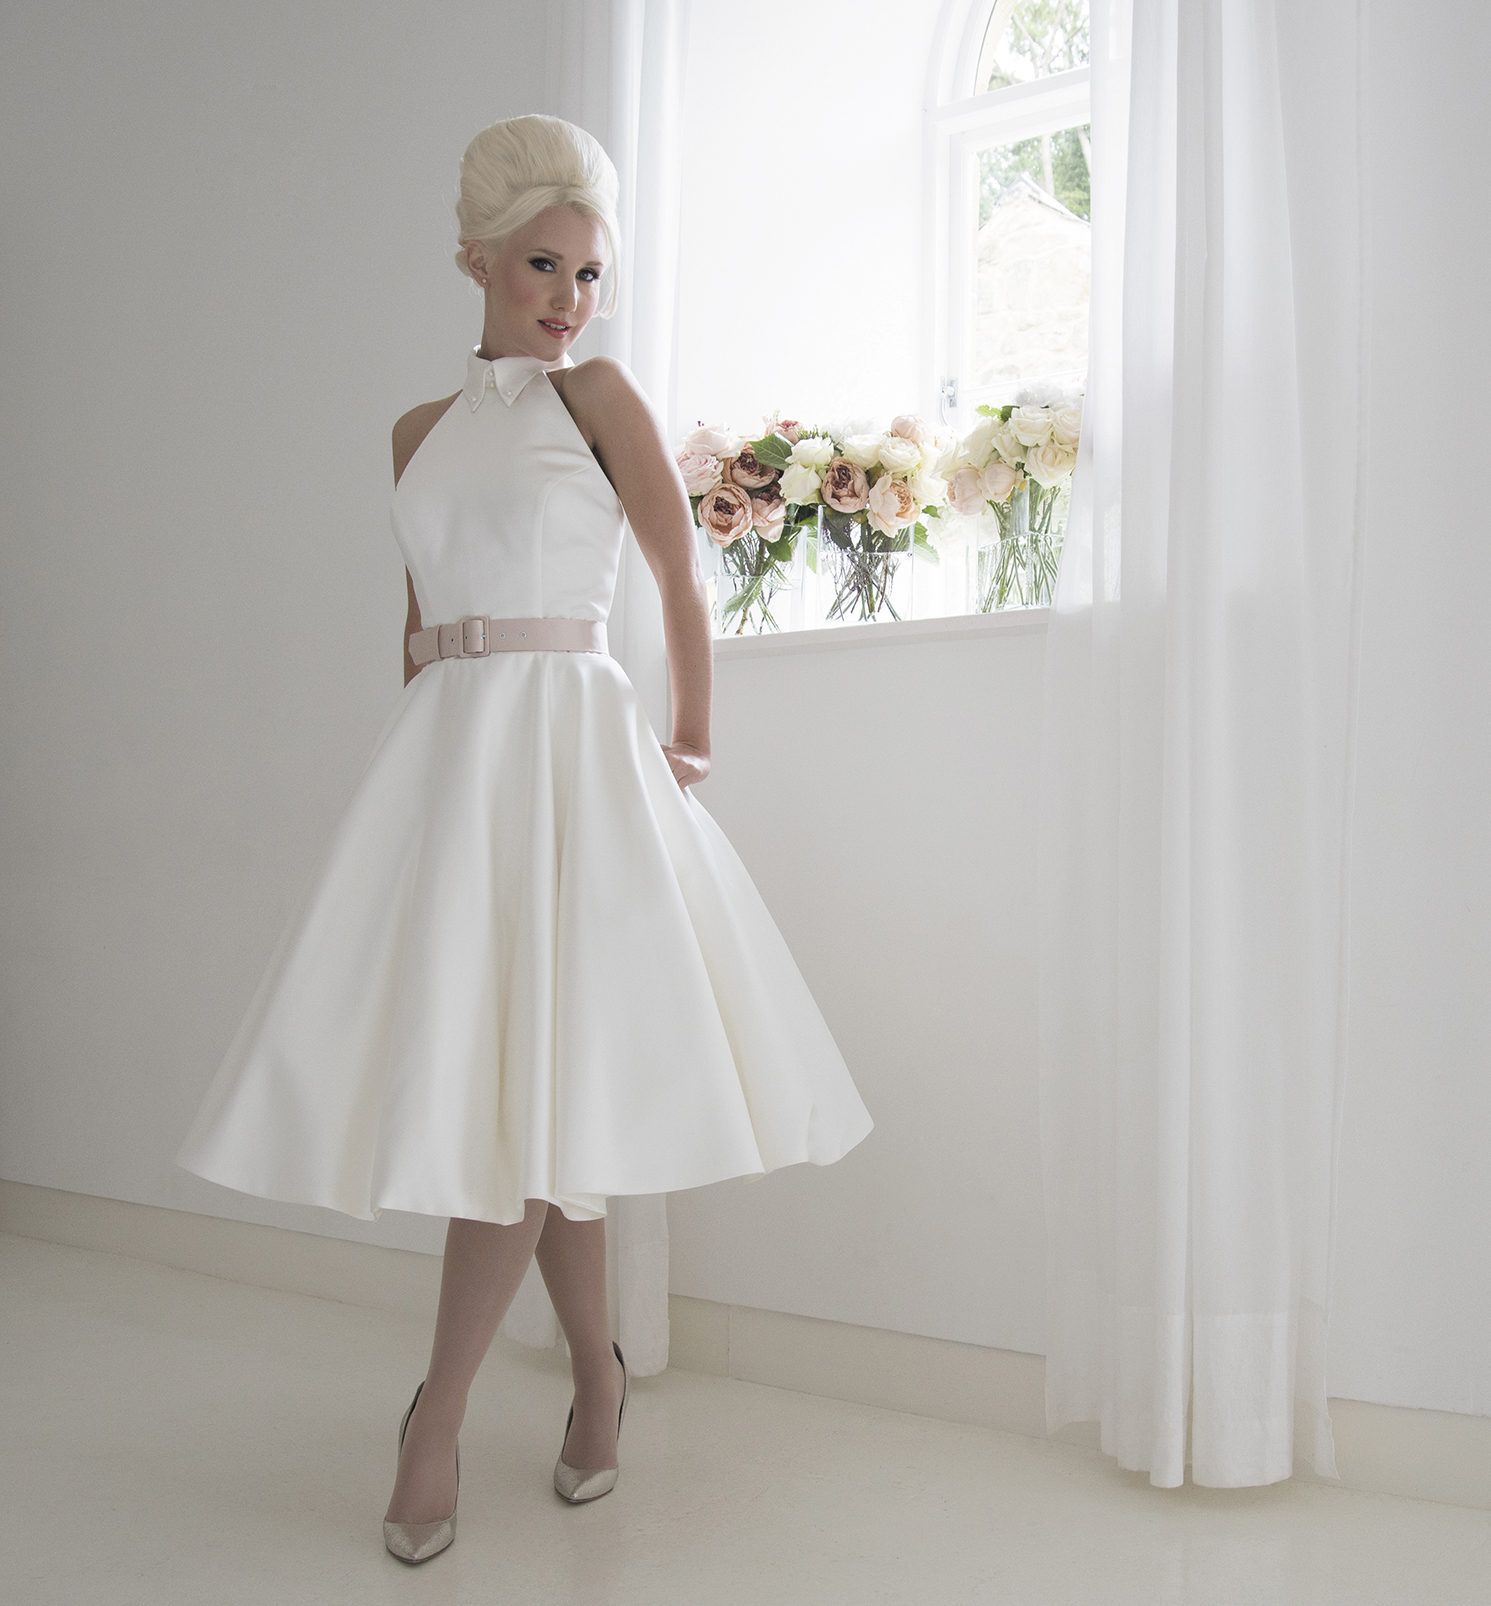 Contemporary Short Wedding Dress With Vintage Styling